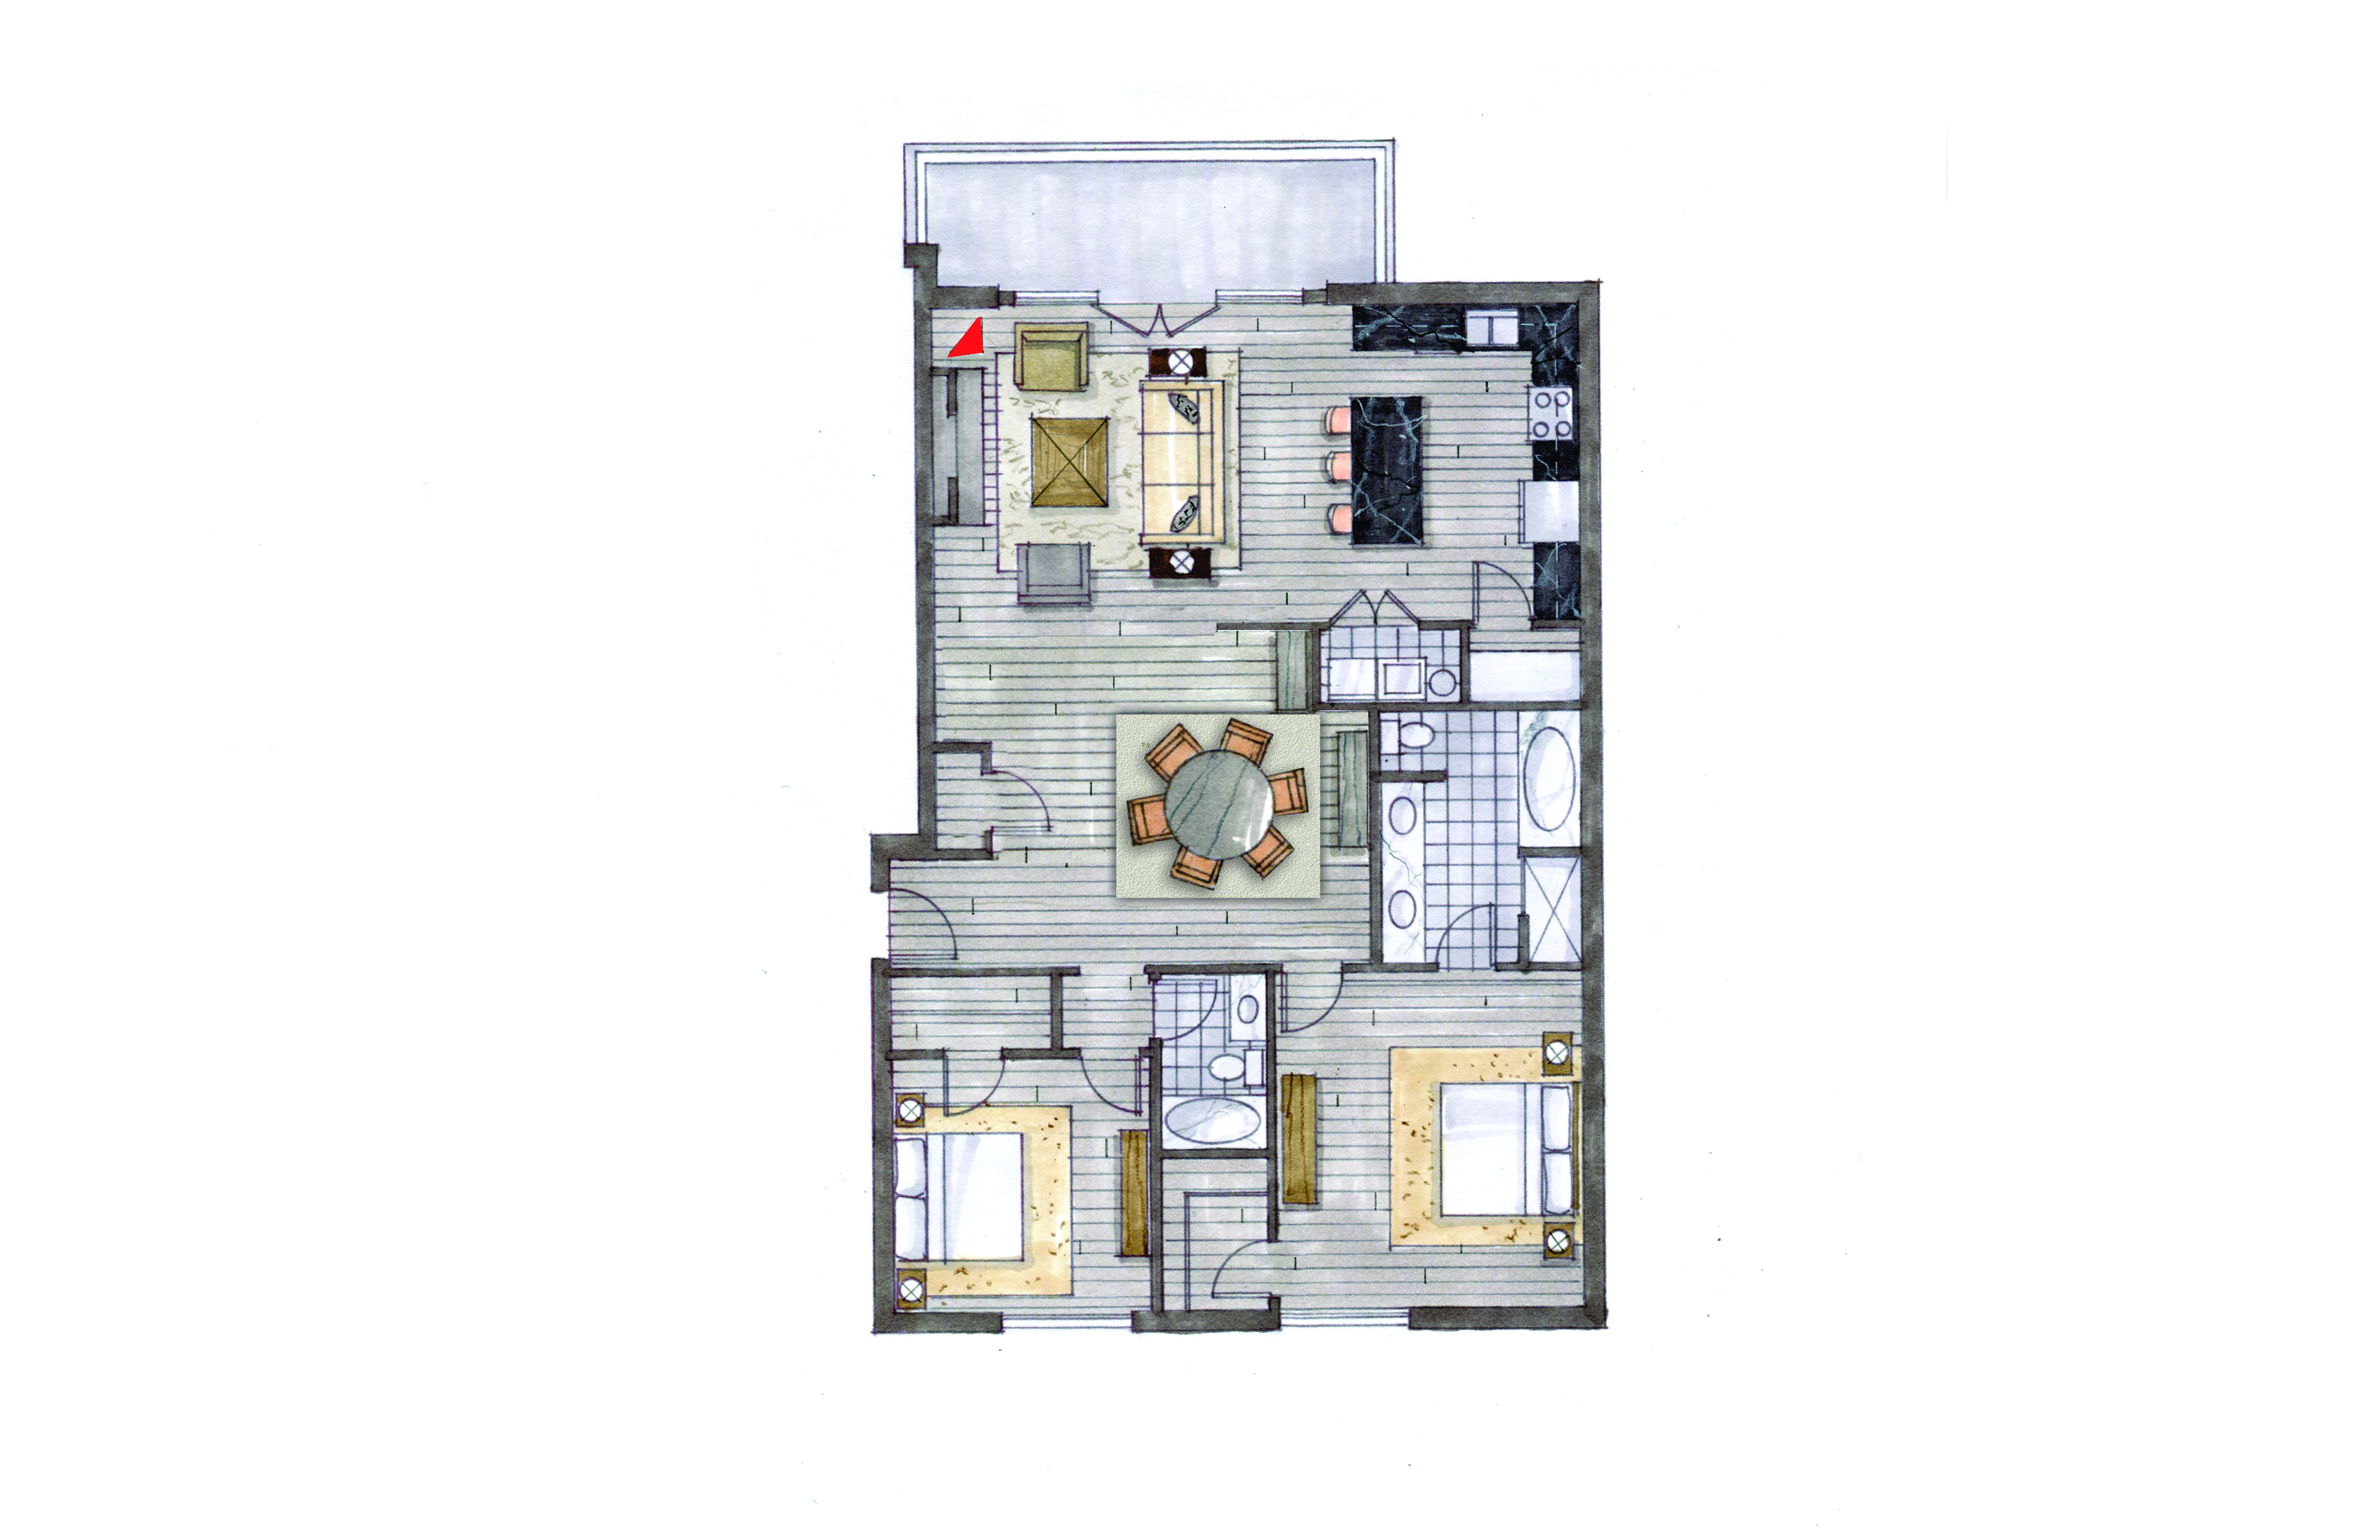 Unit 603 Option 2 Floor Plan